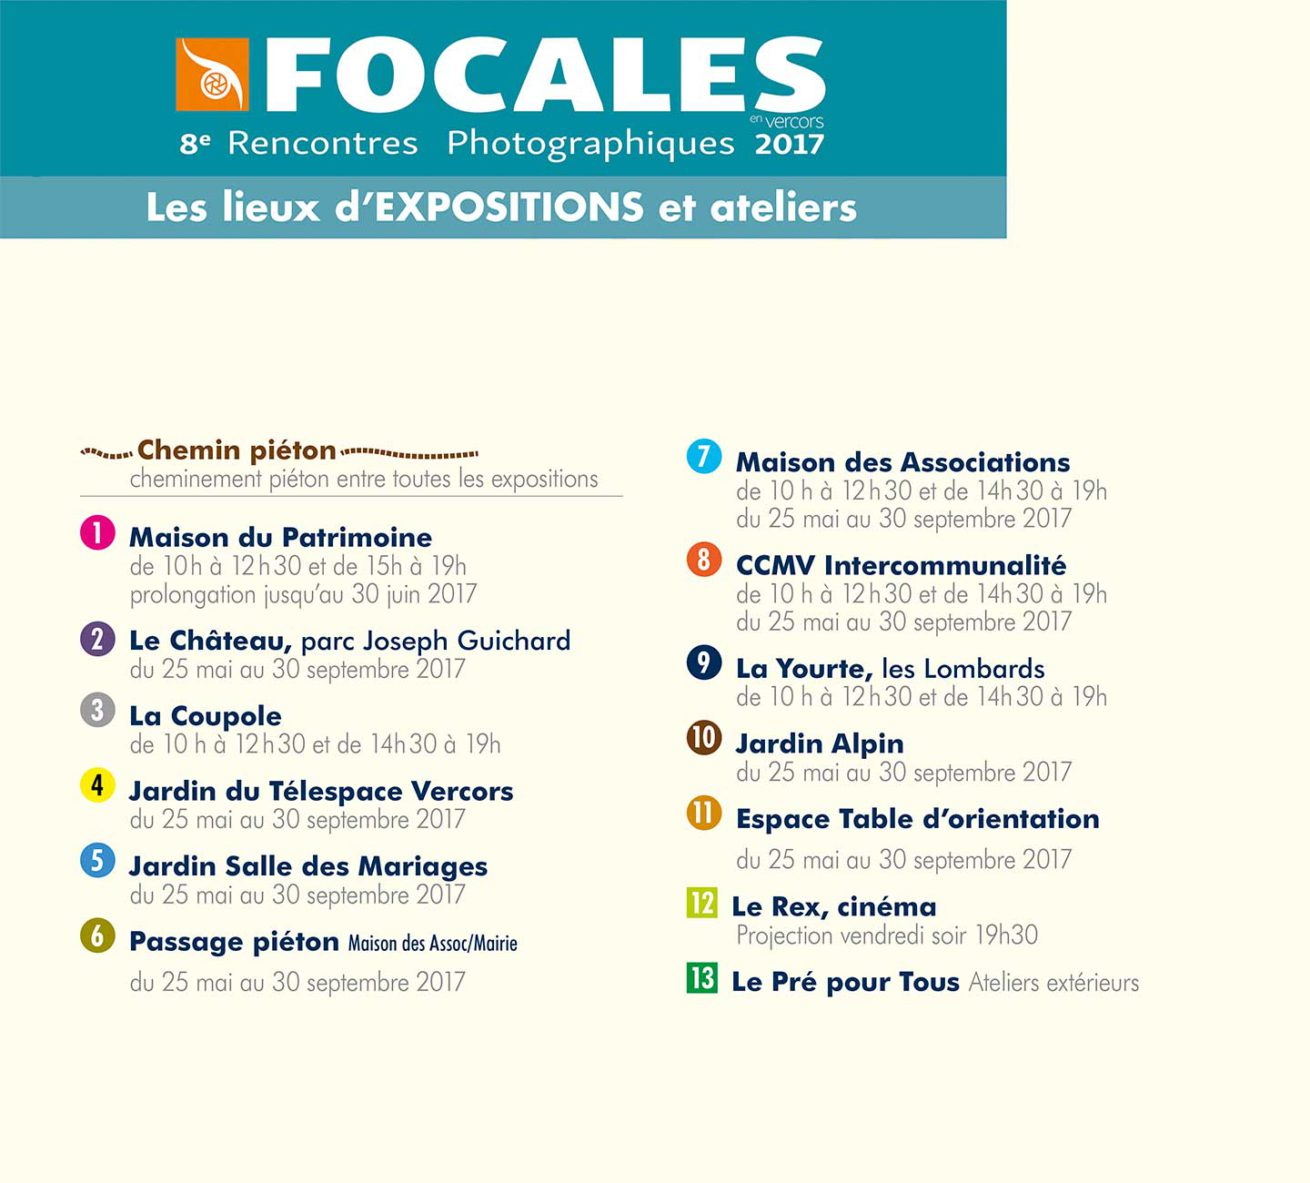 Photo festival Focales en Vercors, practical information: Layout details